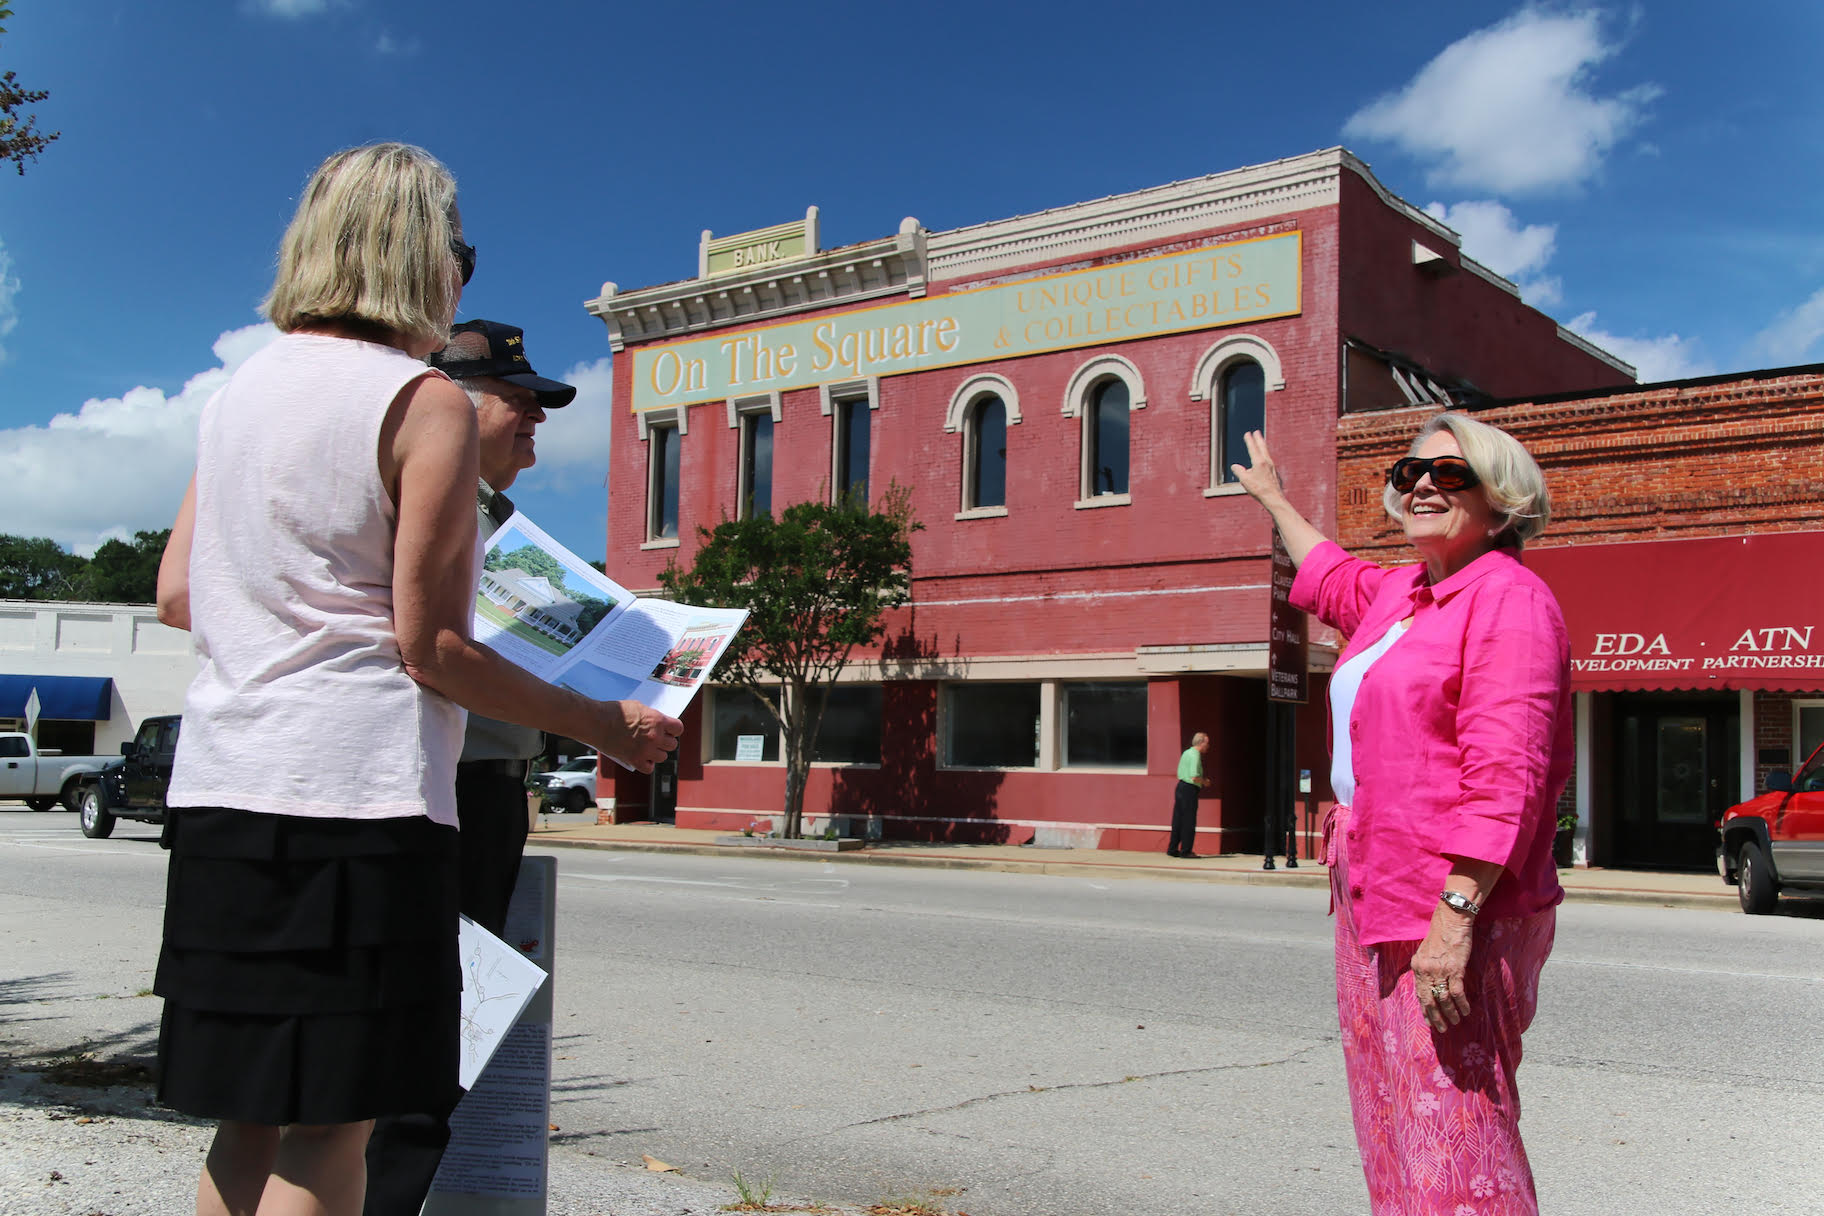 Downtown Monroeville Harper Lee Tour